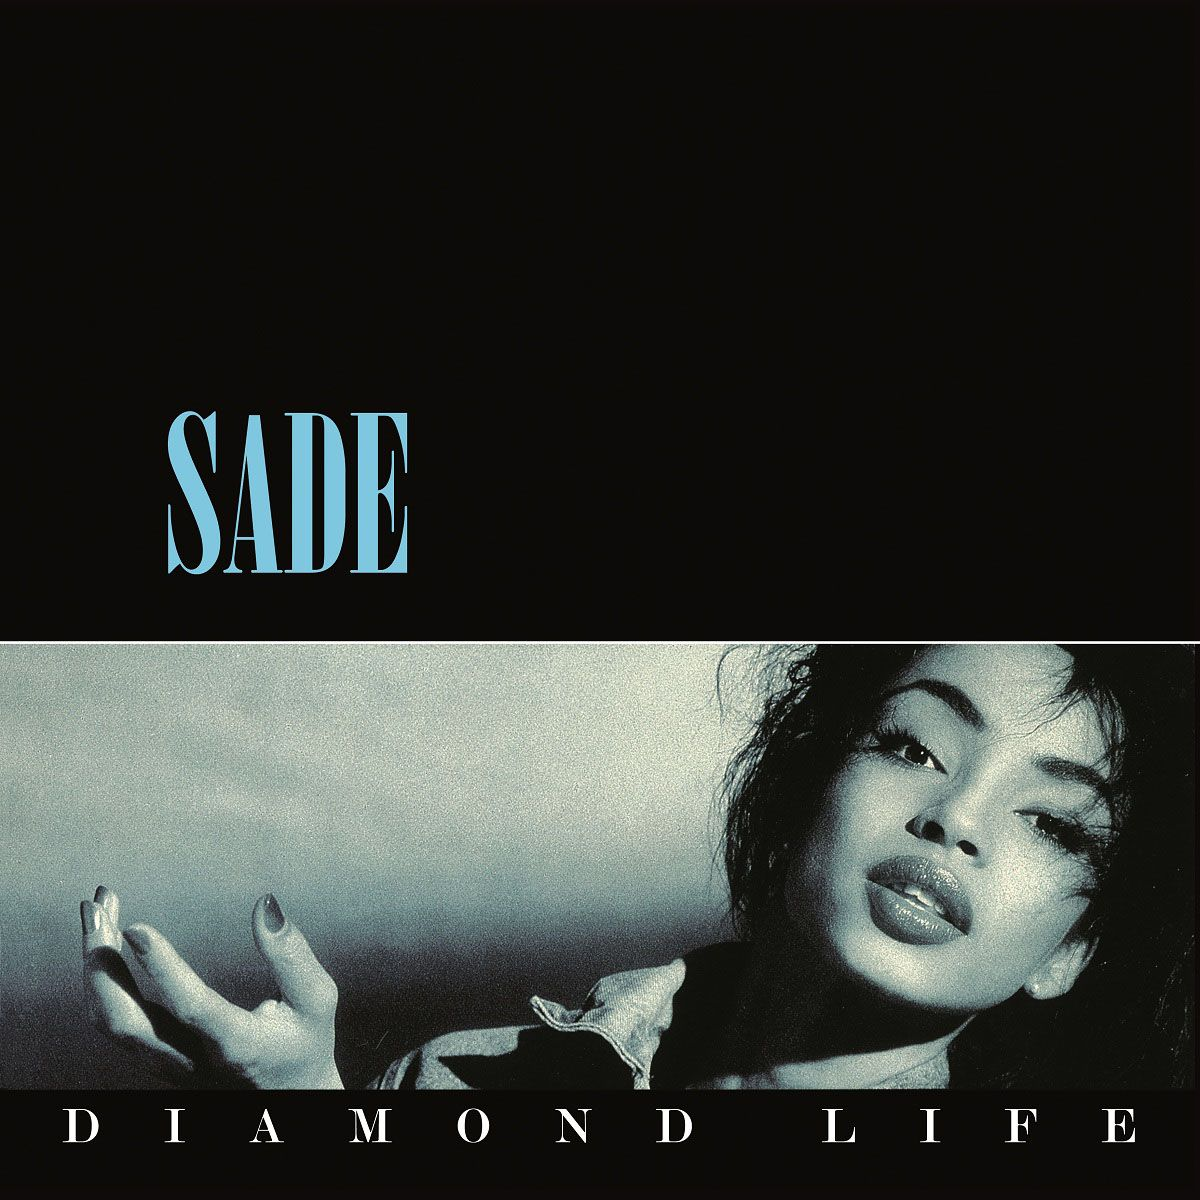 SADE stronger than pride, LP for sale on groovecollector.com